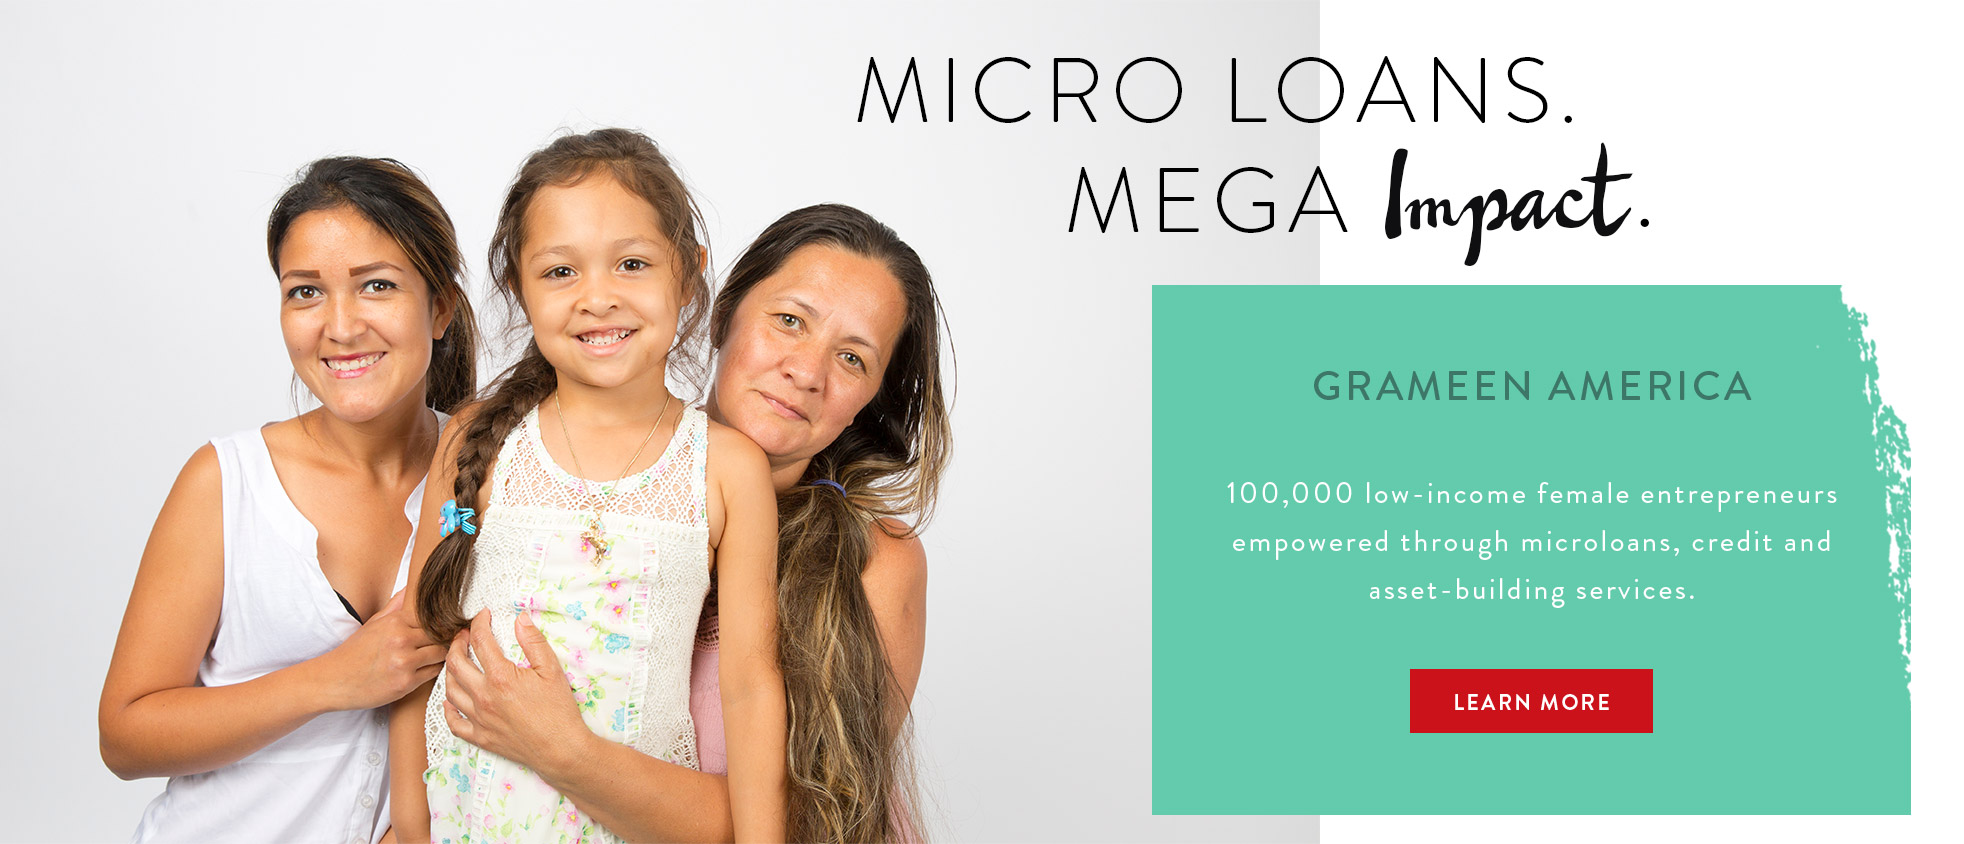 Micro Loans. Mega Impact. Grameen America: 100,000 low-income female entrepreneurs empowered through microloans, credit and asset-building services. LEARN MORE.